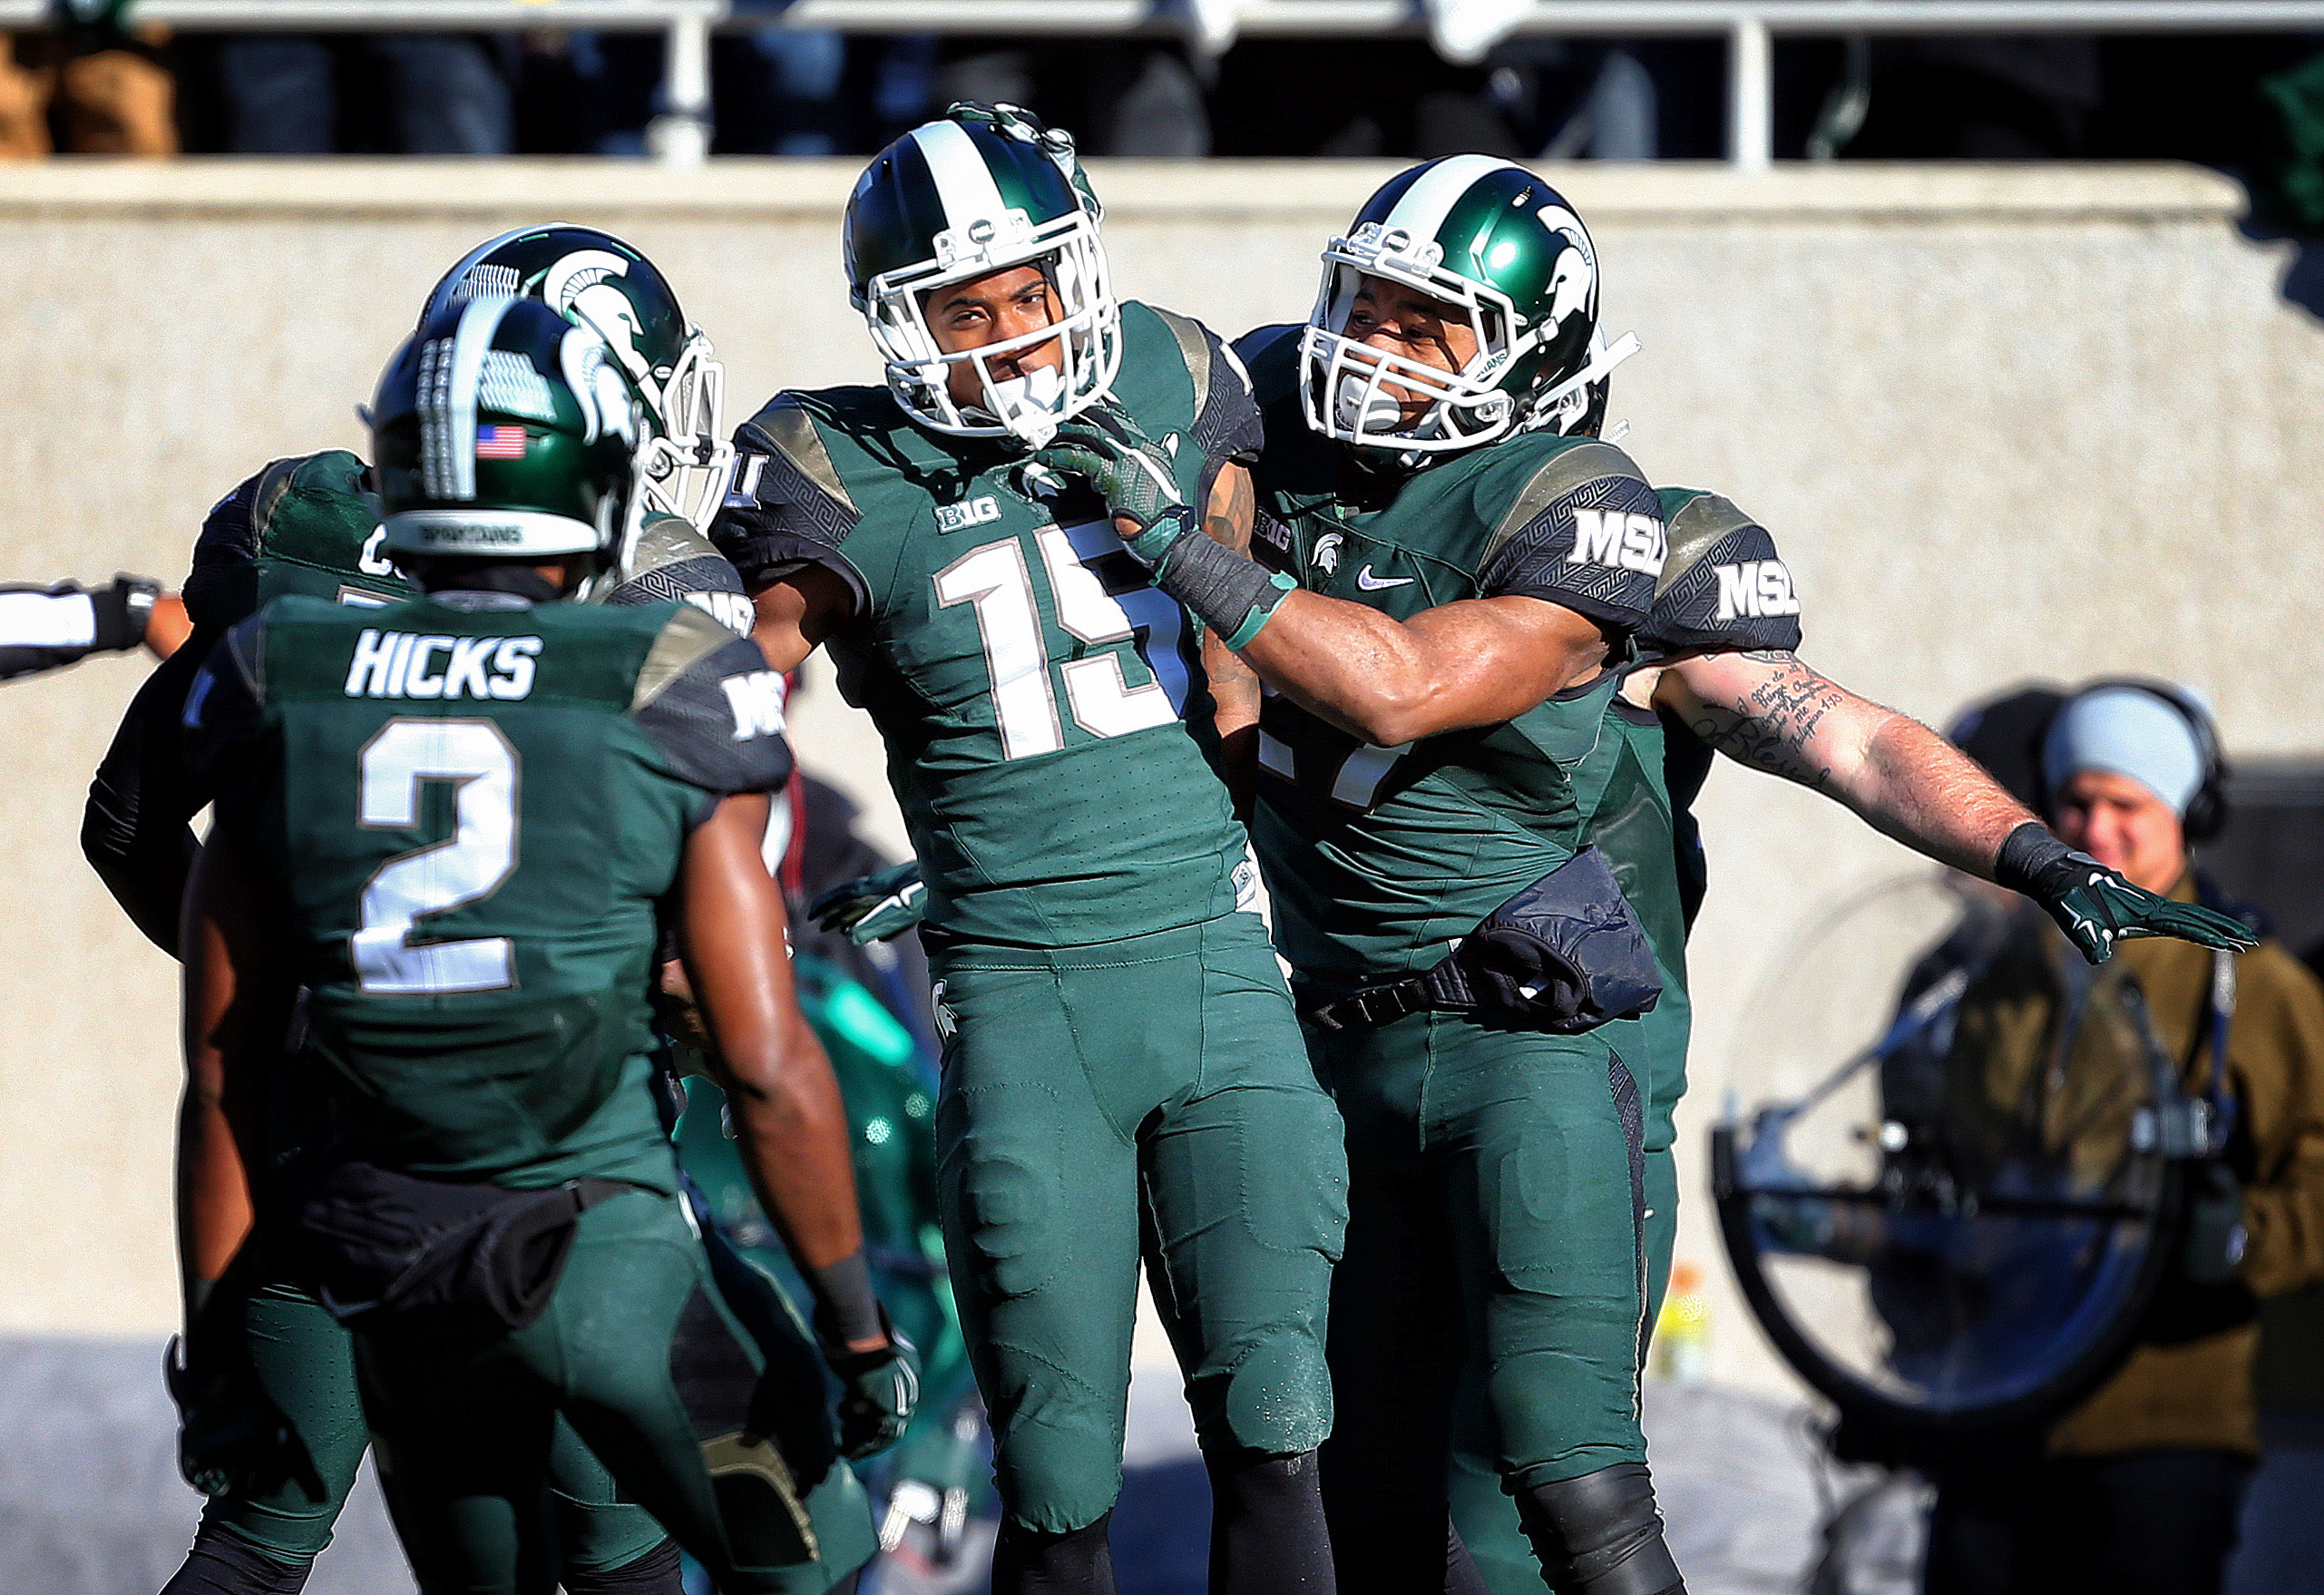 Nov 14, 2015; East Lansing, MI, USA; Michigan State Spartans cornerback Tyson Smith (15) and Michigan State Spartans cornerback Darian Hicks (2) celebrate defense stop during the 1st quarter of a game against the Maryland Terrapins at Spartan Stadium. Mandatory Credit: Mike Carter-USA TODAY Sports